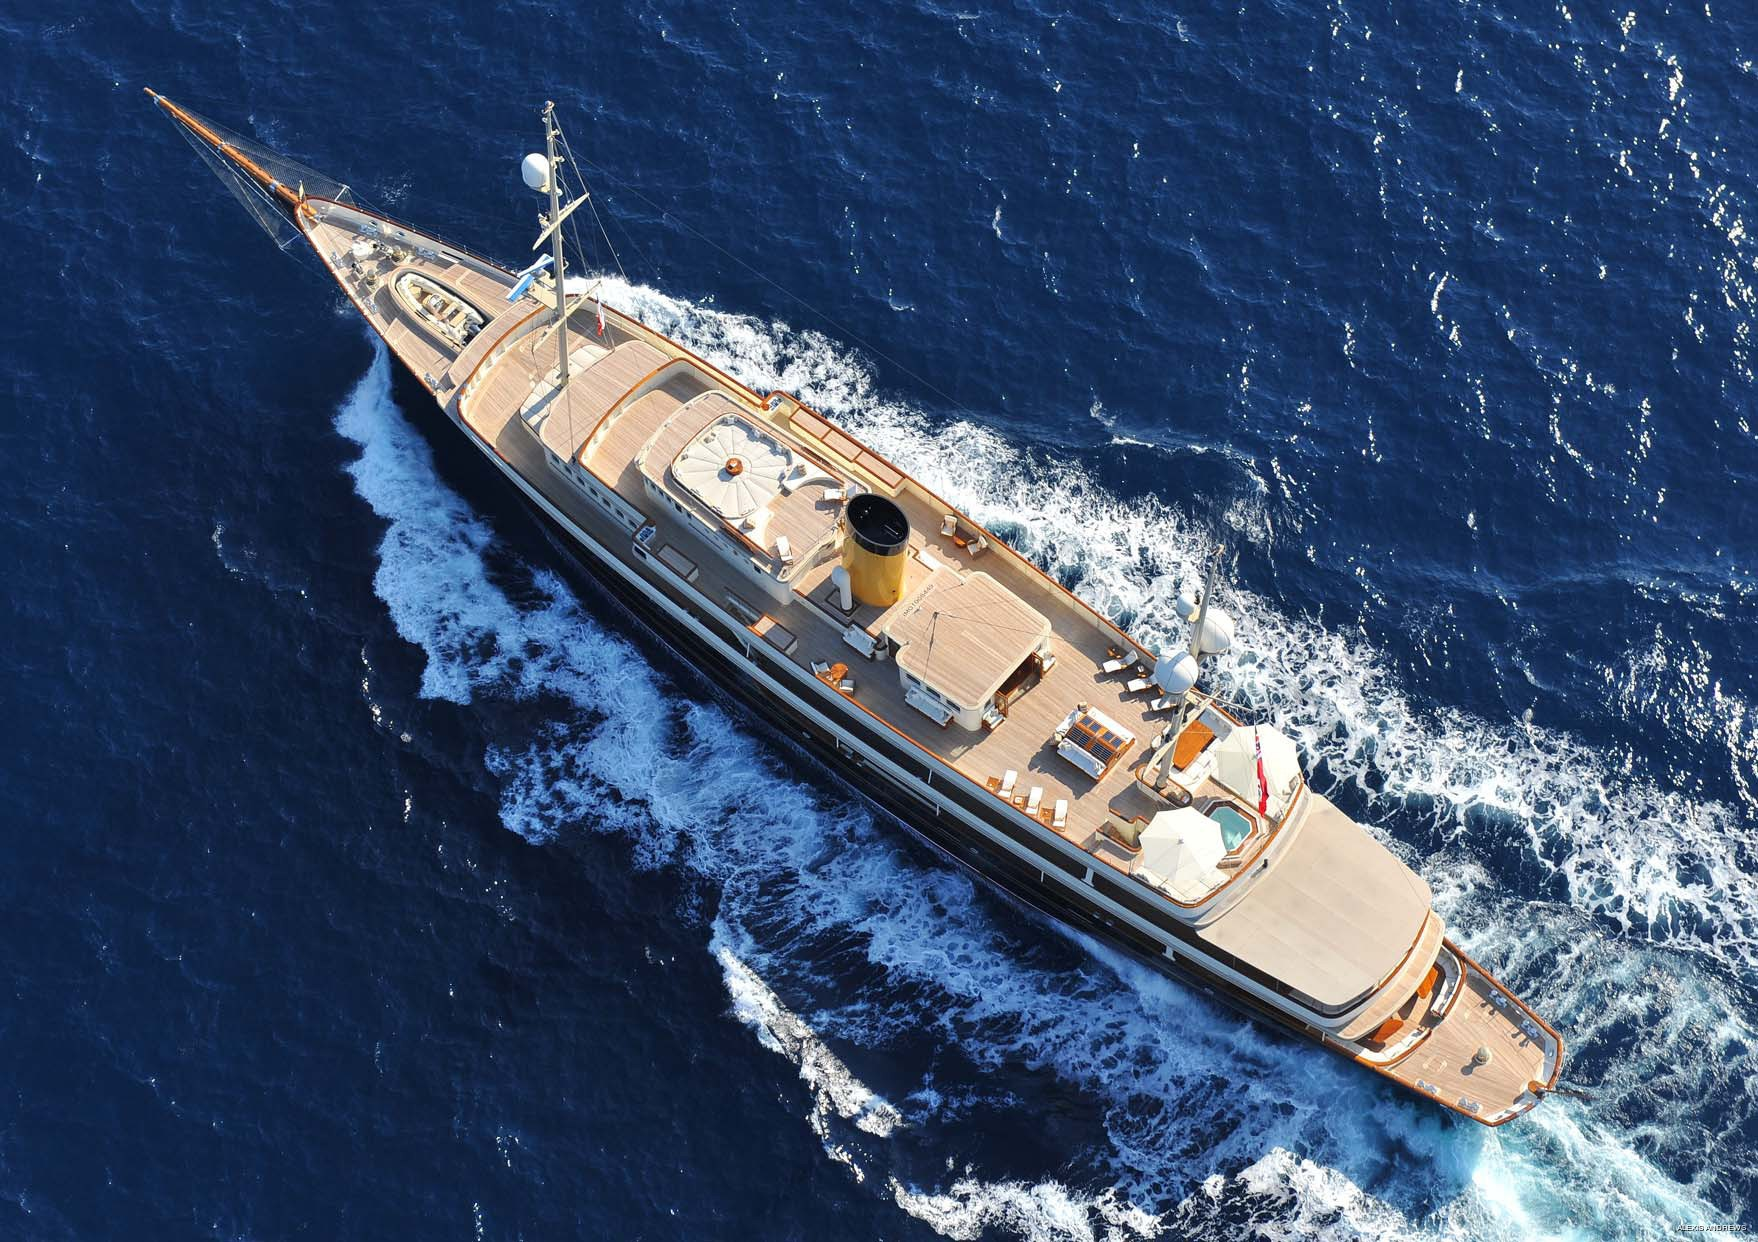 From Above Aspect: Yacht NERO's Cruising Photograph